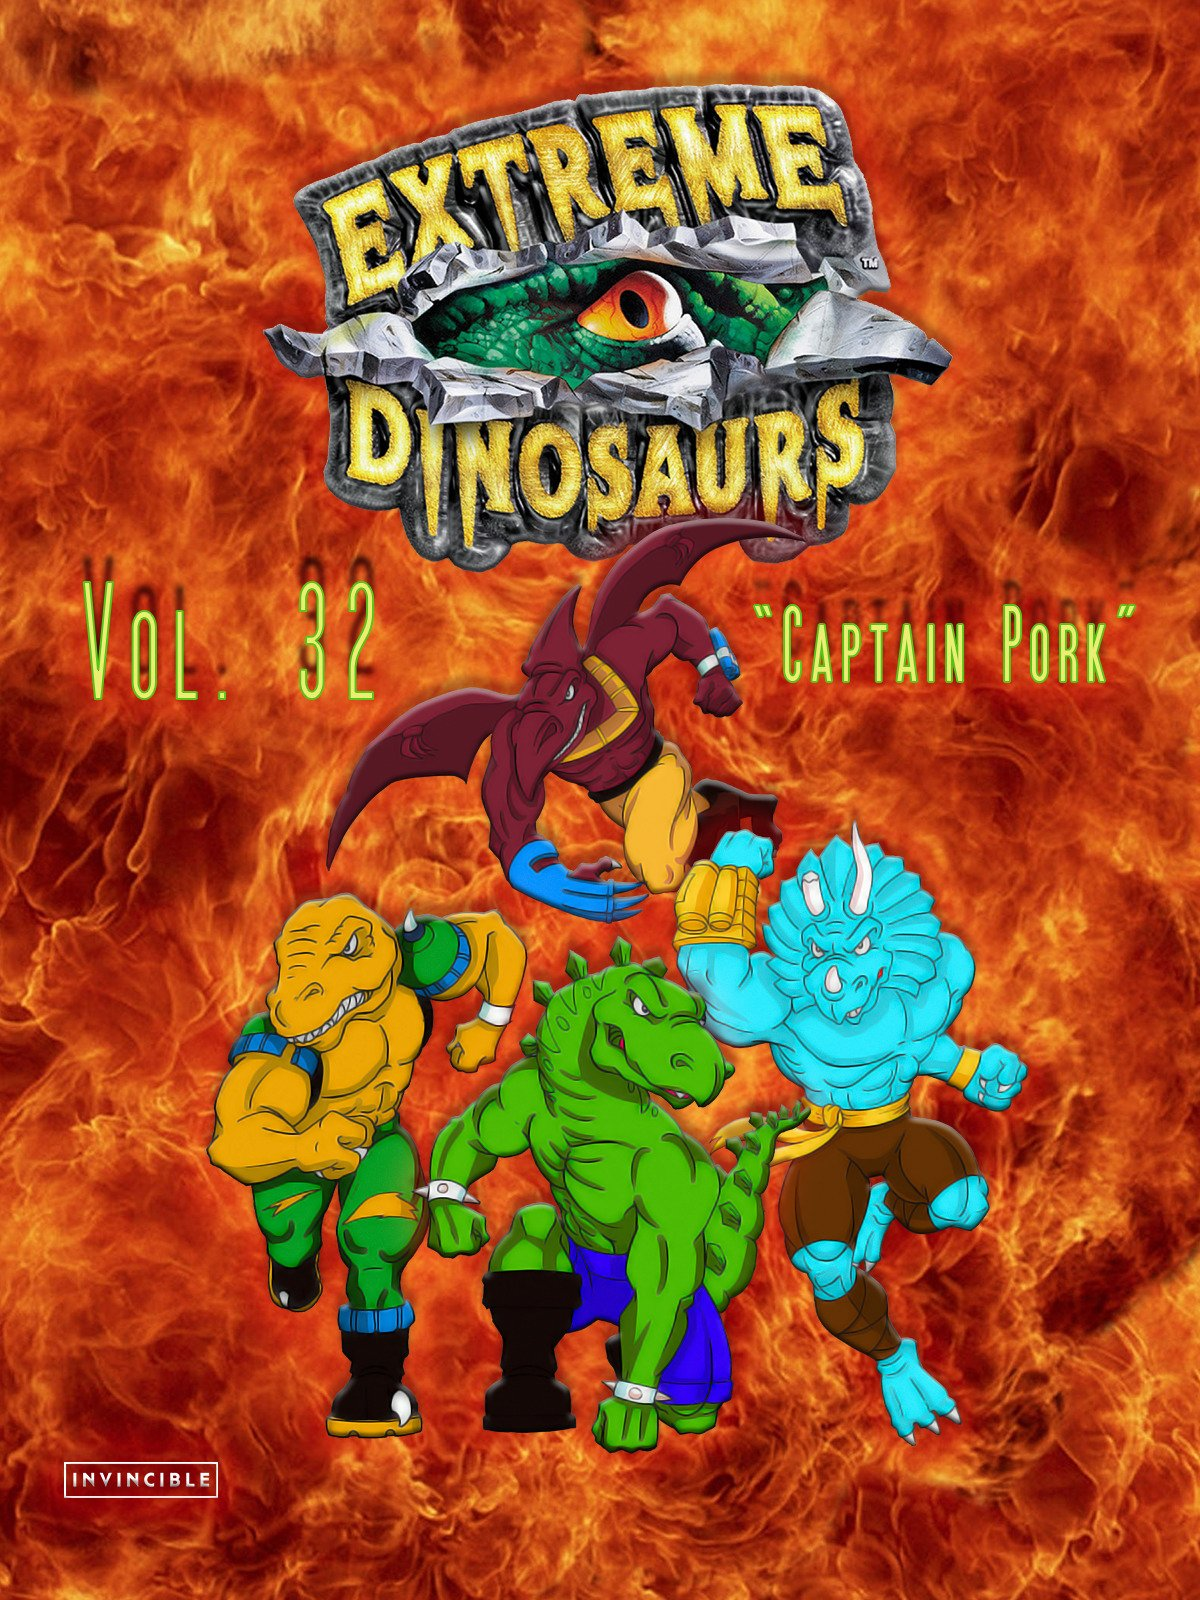 Extreme Dinosaurs Vol. 32Captain Pork